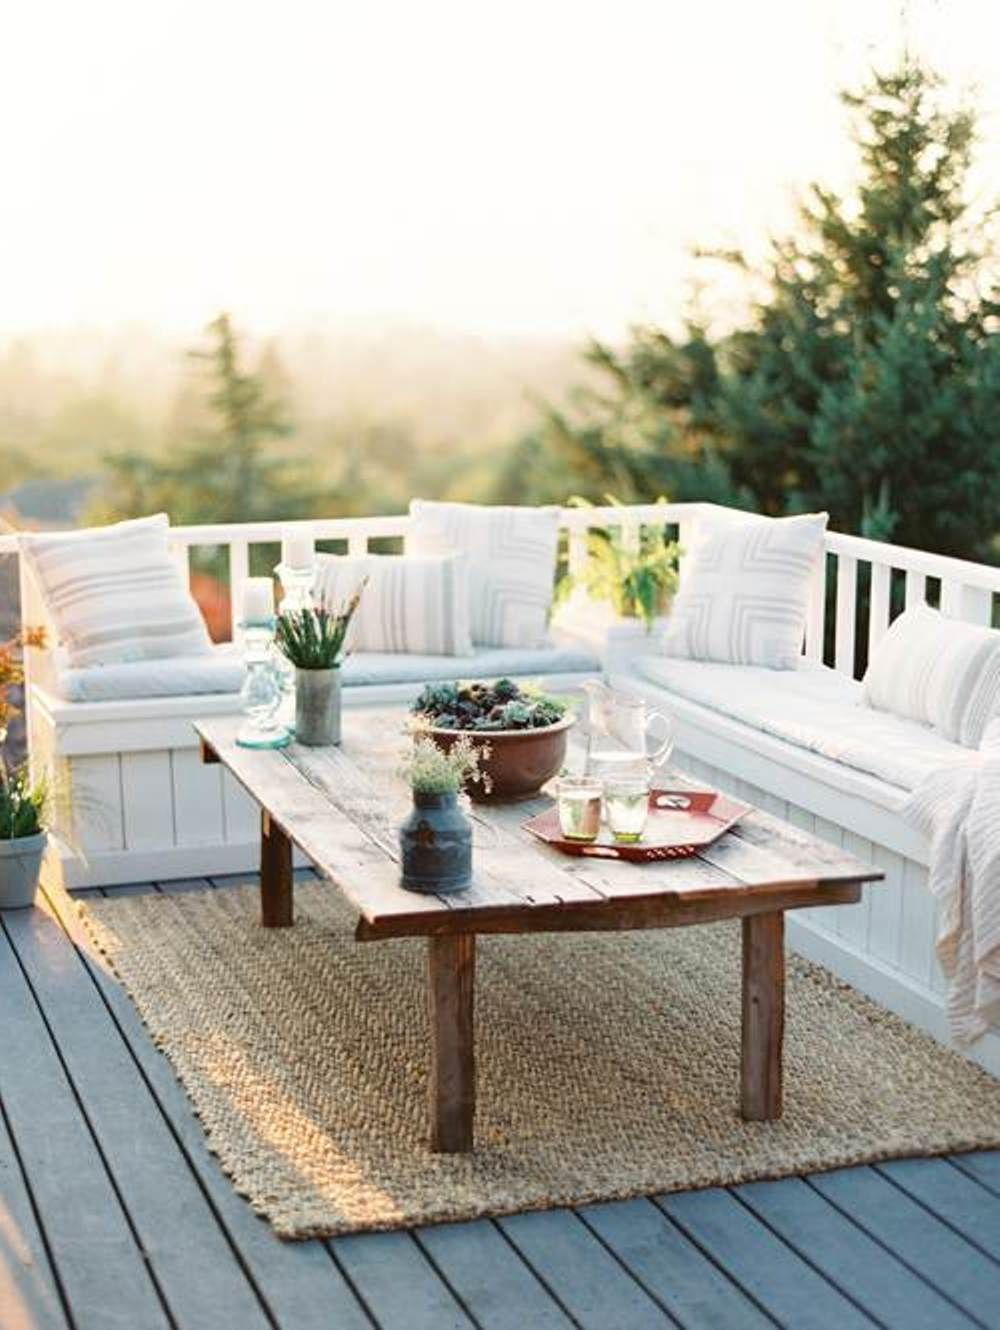 Balcony furniture ideas - Patio Decorating Ideas On A Budget 11 Easy And Affordable Porch Decorating Ideas 25 Unique Balcony